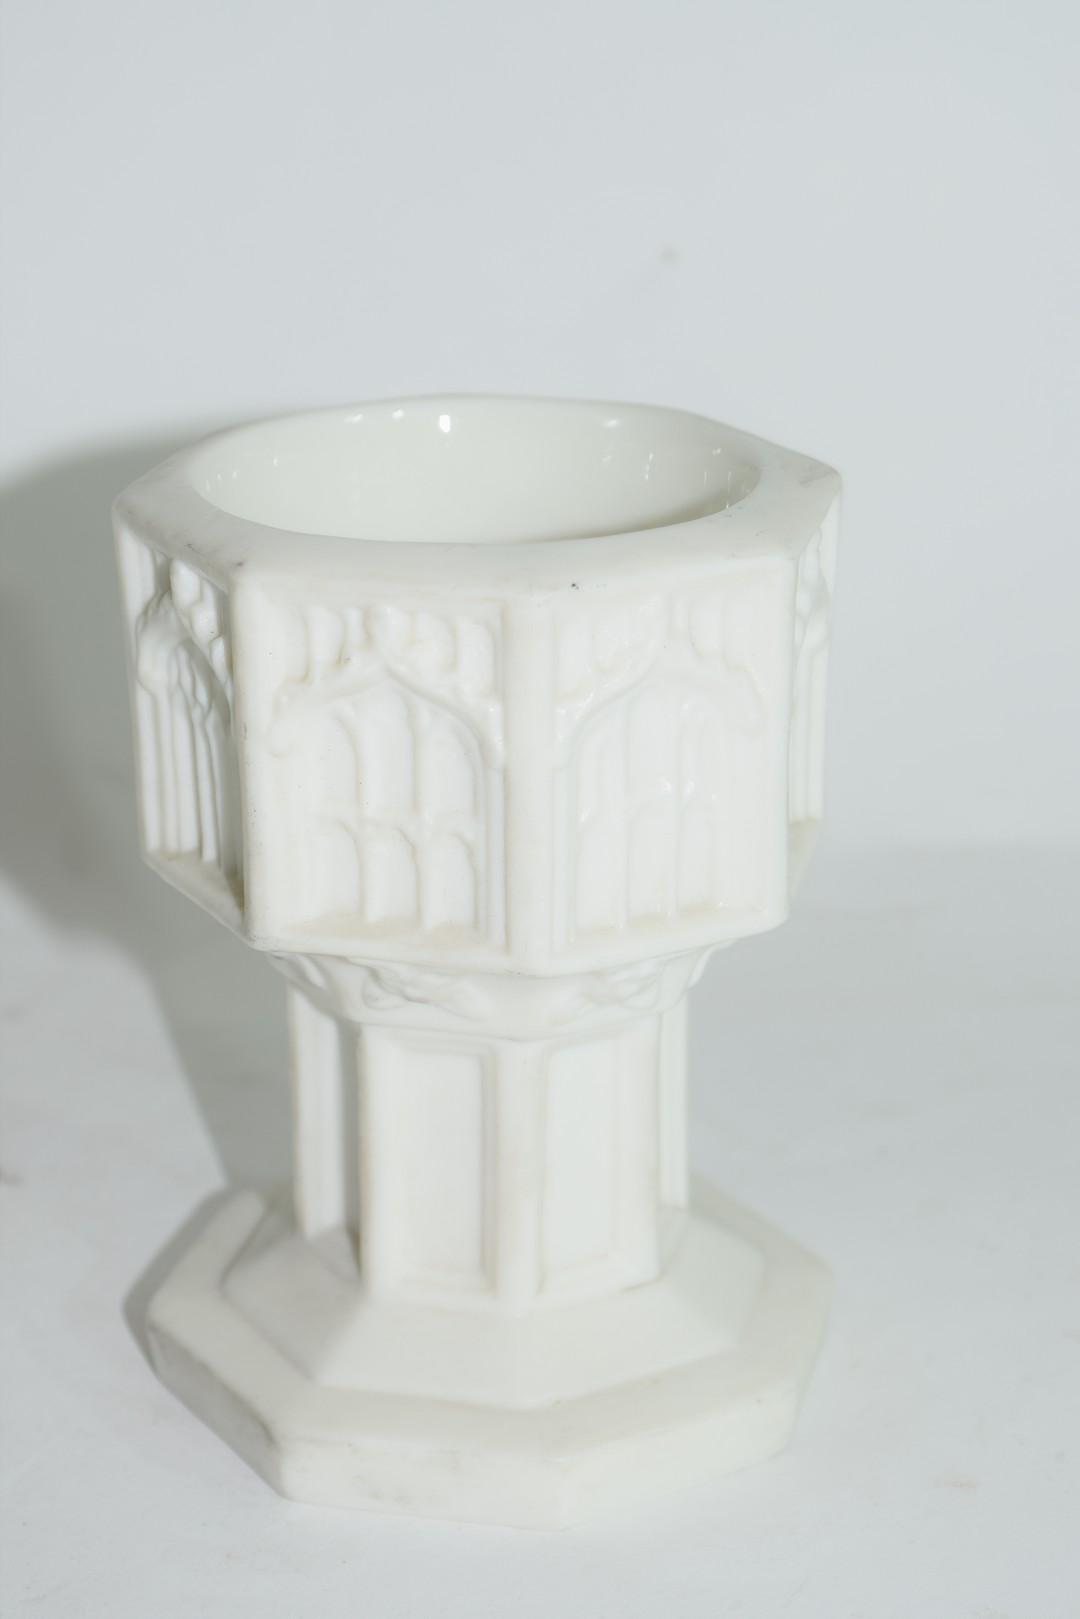 19th century Minton Parian ware model of a font - Image 4 of 7